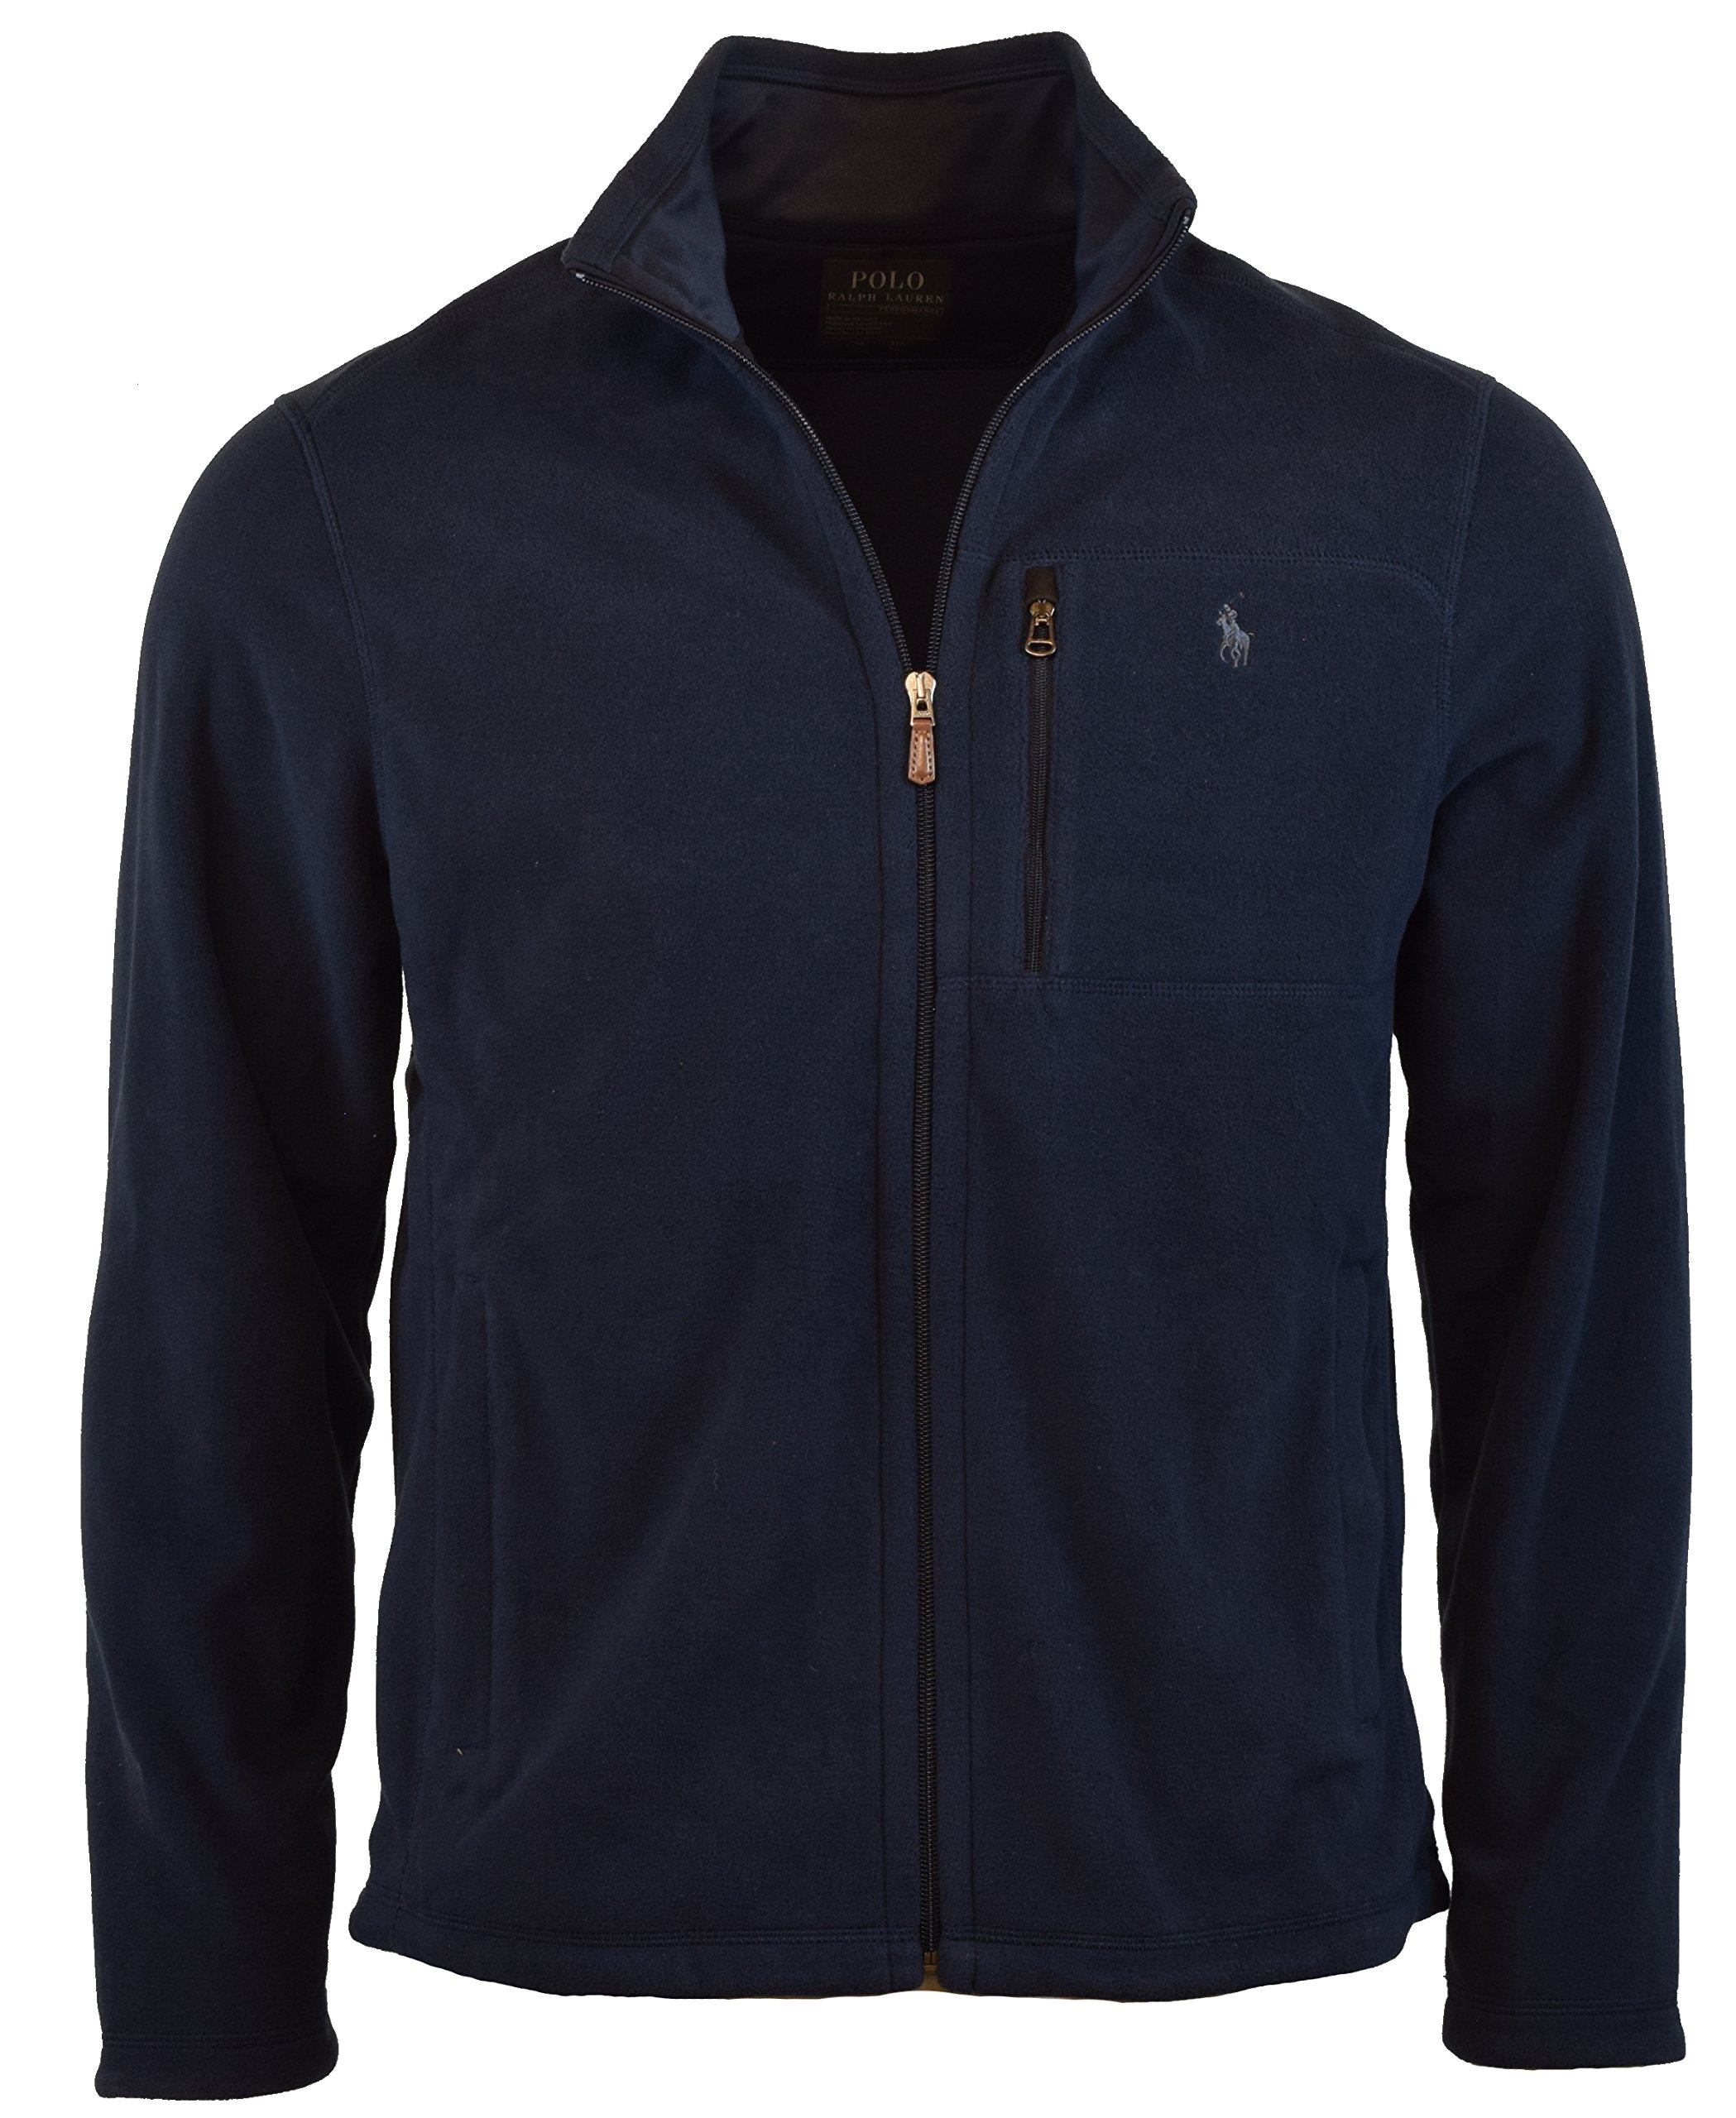 Polo Ralph Lauren Men's Performance Full Zip Fleece Jacket (L, Navy) by Polo Ralph Lauren